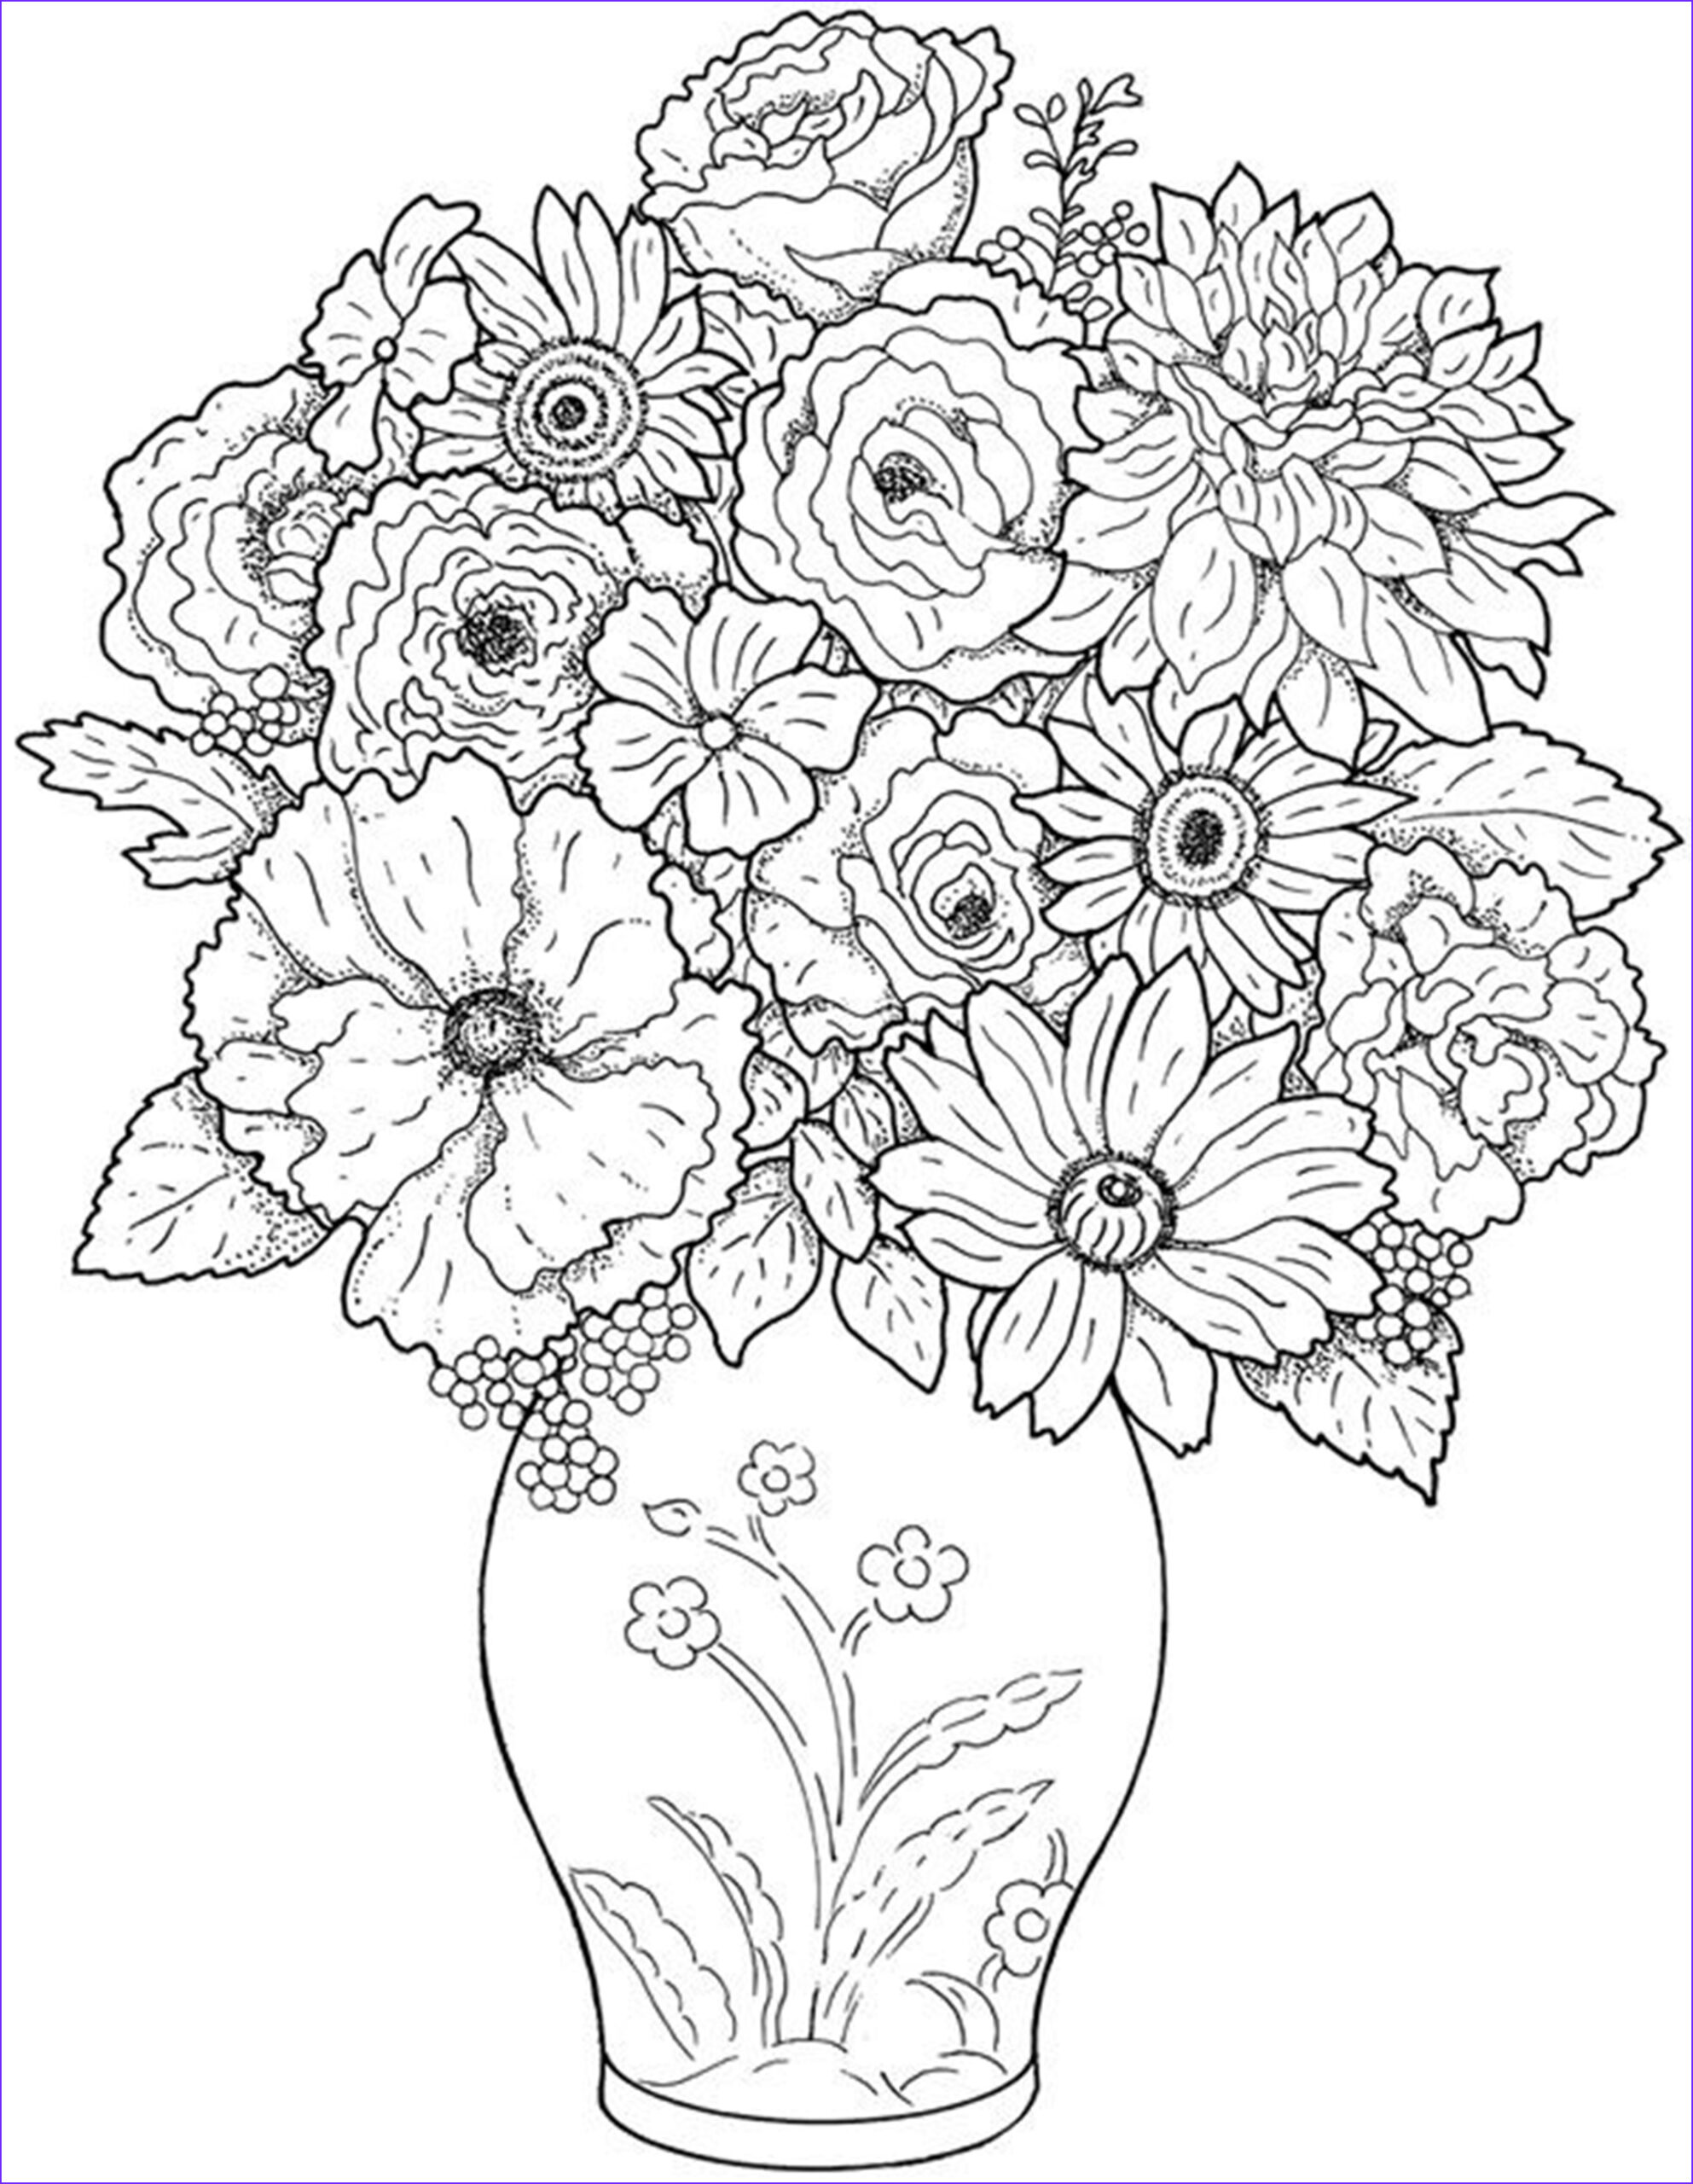 Flower Coloring Pages for Adults Awesome Stock Free Printable Flower Coloring Pages for Kids Best